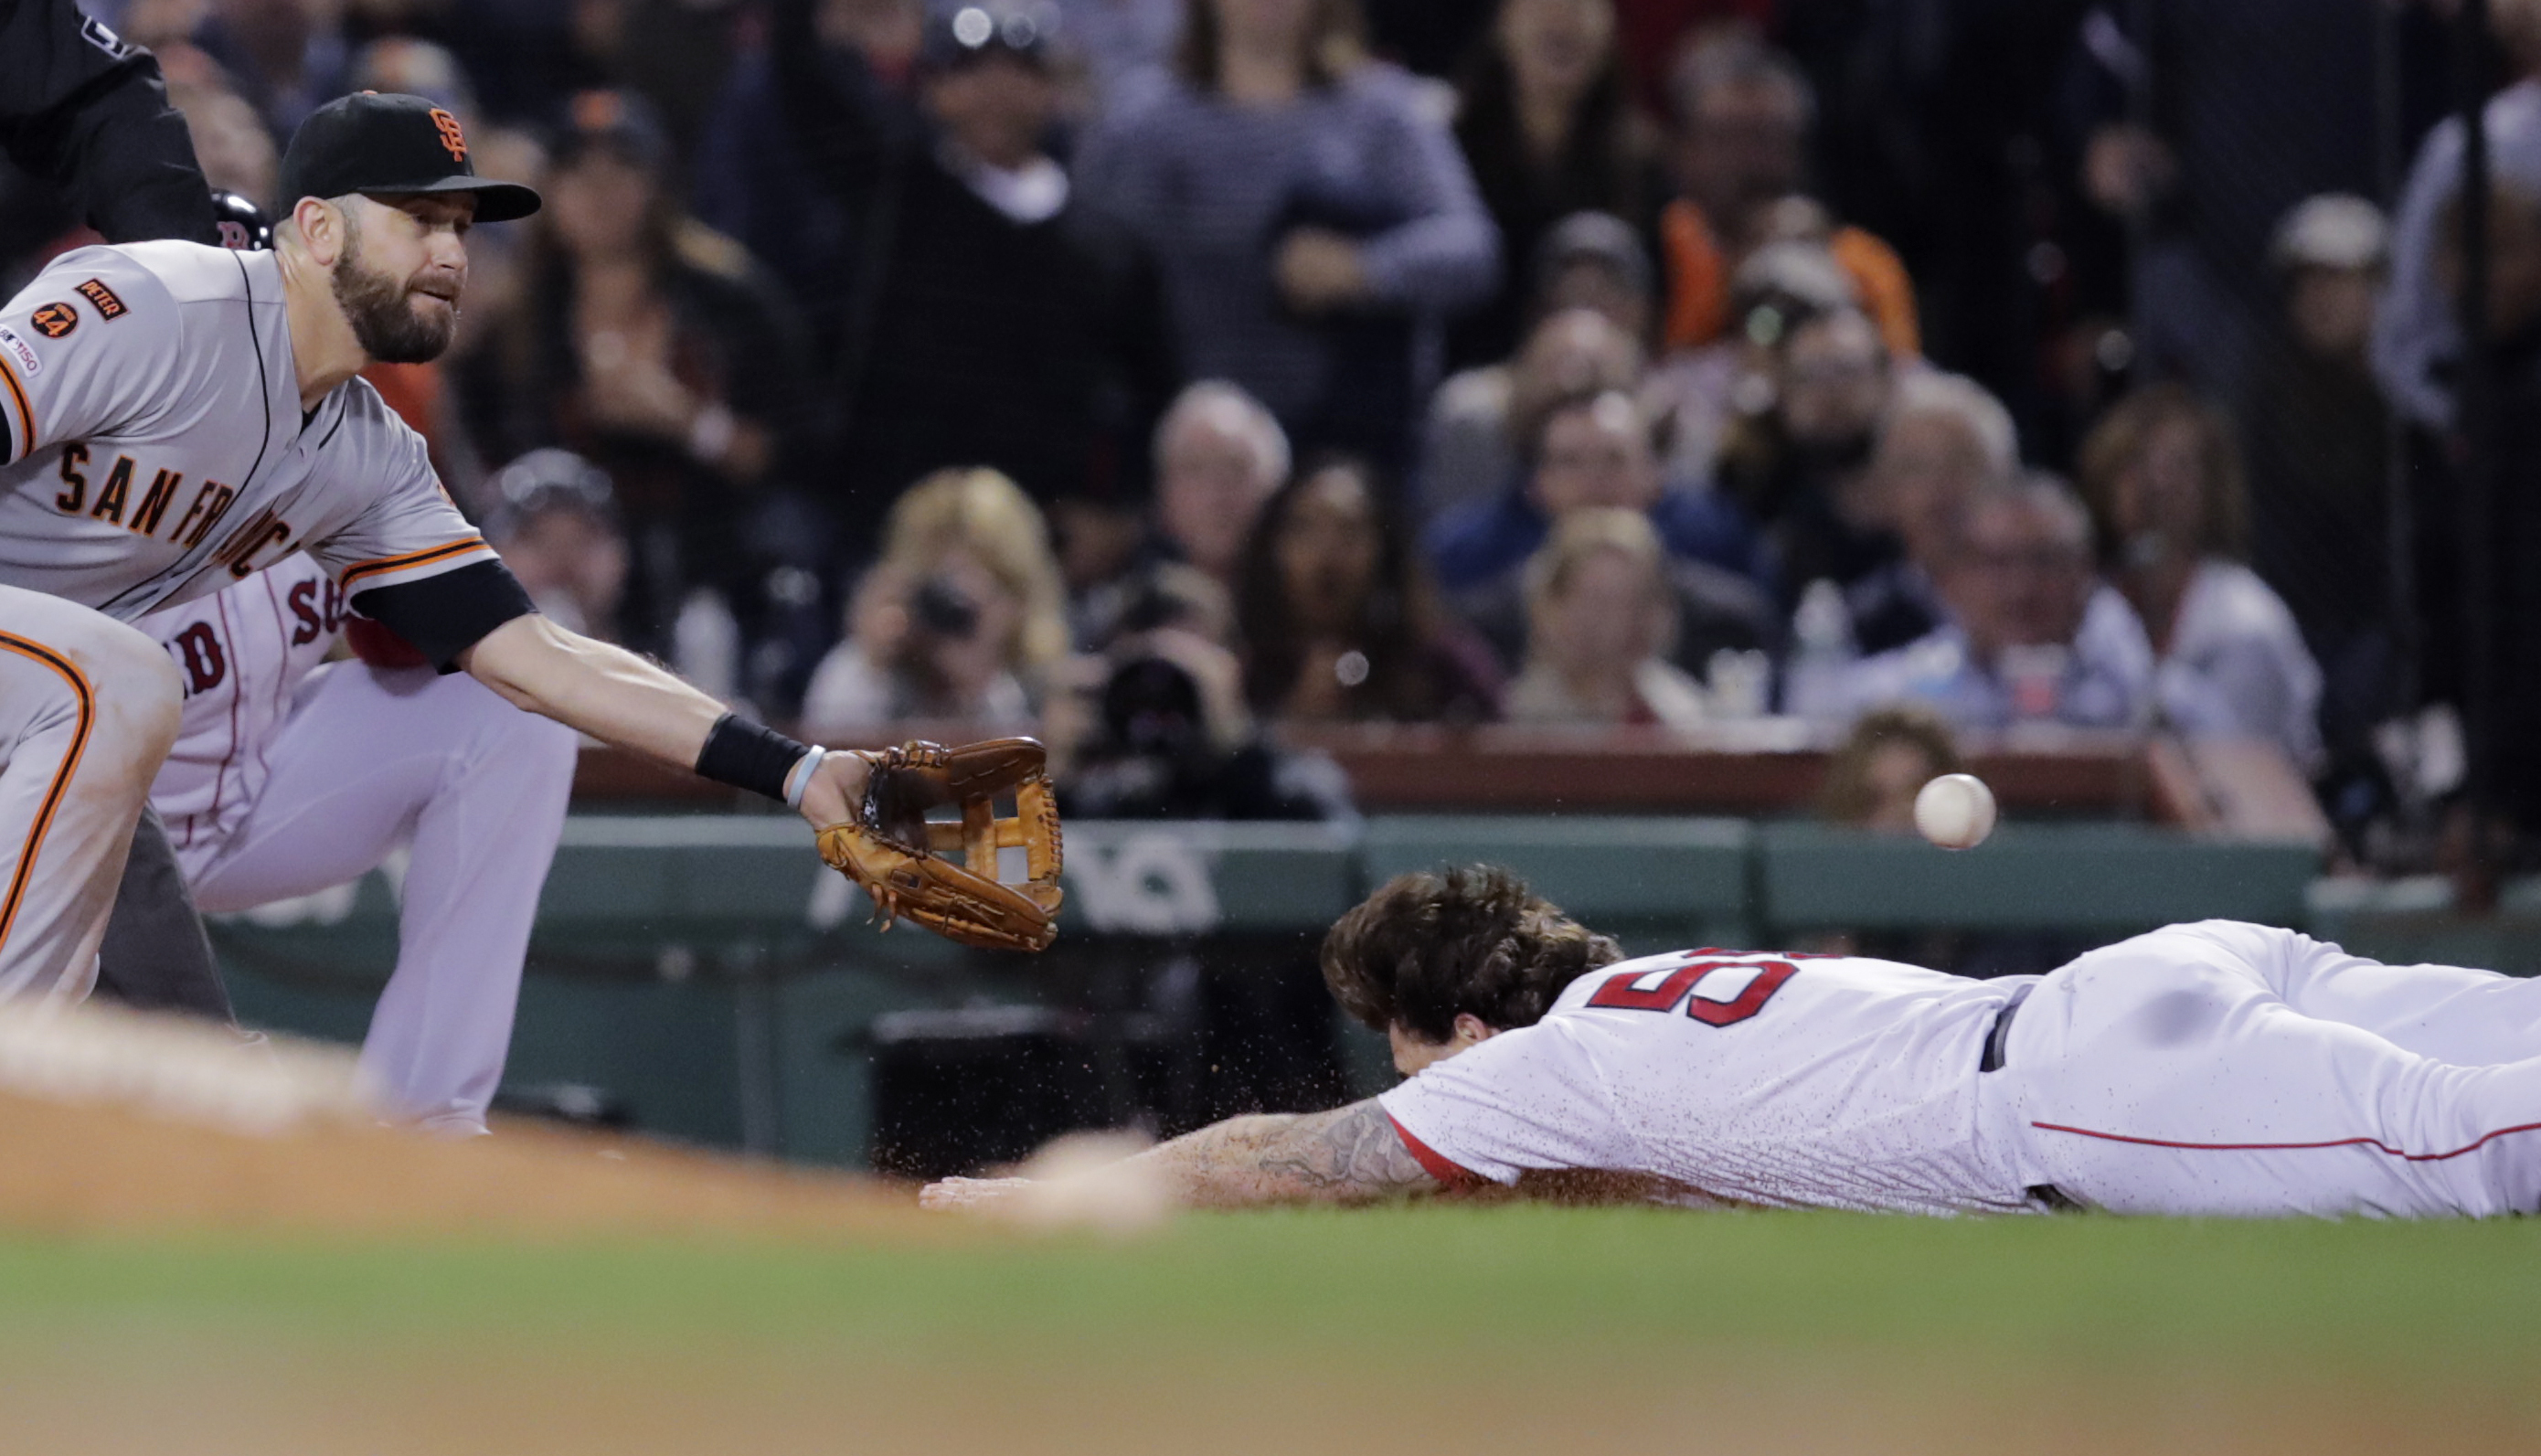 Sam Travis leaves Boston Red Sox game after relay throws strikes him in back of head while diving into third on triple